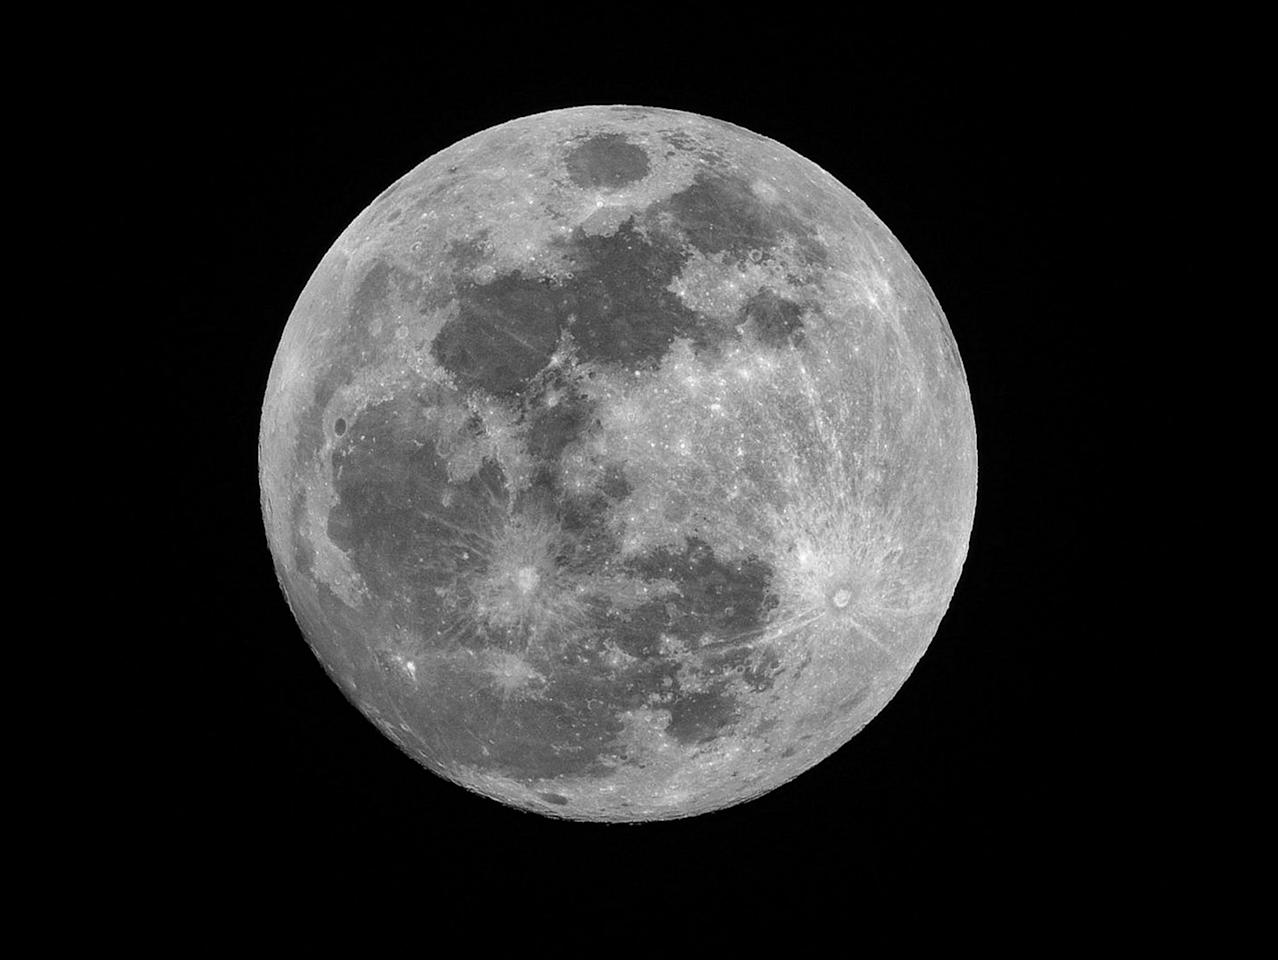 """<p>When there are <a href=""""http://earthsky.org/astronomy-essentials/when-is-the-next-blue-moon"""" target=""""_blank"""" class=""""ga-track"""" data-ga-category=""""Related"""" data-ga-label=""""http://earthsky.org/astronomy-essentials/when-is-the-next-blue-moon"""" data-ga-action=""""In-Line Links"""">two full moons in a singular calendar</a> month, it's called a Blue Moon. The last time a Blue Moon occurred was in 2018. So don't fret if you missed it, because there will be one come this October. The first full moon will take place on Oct. 1, and the Blue Moon, or """"extra"""" full moon, will take place on <a class=""""sugar-inline-link ga-track"""" title=""""Latest photos and news for Halloween"""" href=""""https://www.popsugar.com/Halloween"""" target=""""_blank"""" data-ga-category=""""Related"""" data-ga-label=""""https://www.popsugar.com/Halloween"""" data-ga-action=""""&lt;-related-&gt; Links"""">Halloween</a>. Spooky!</p>"""